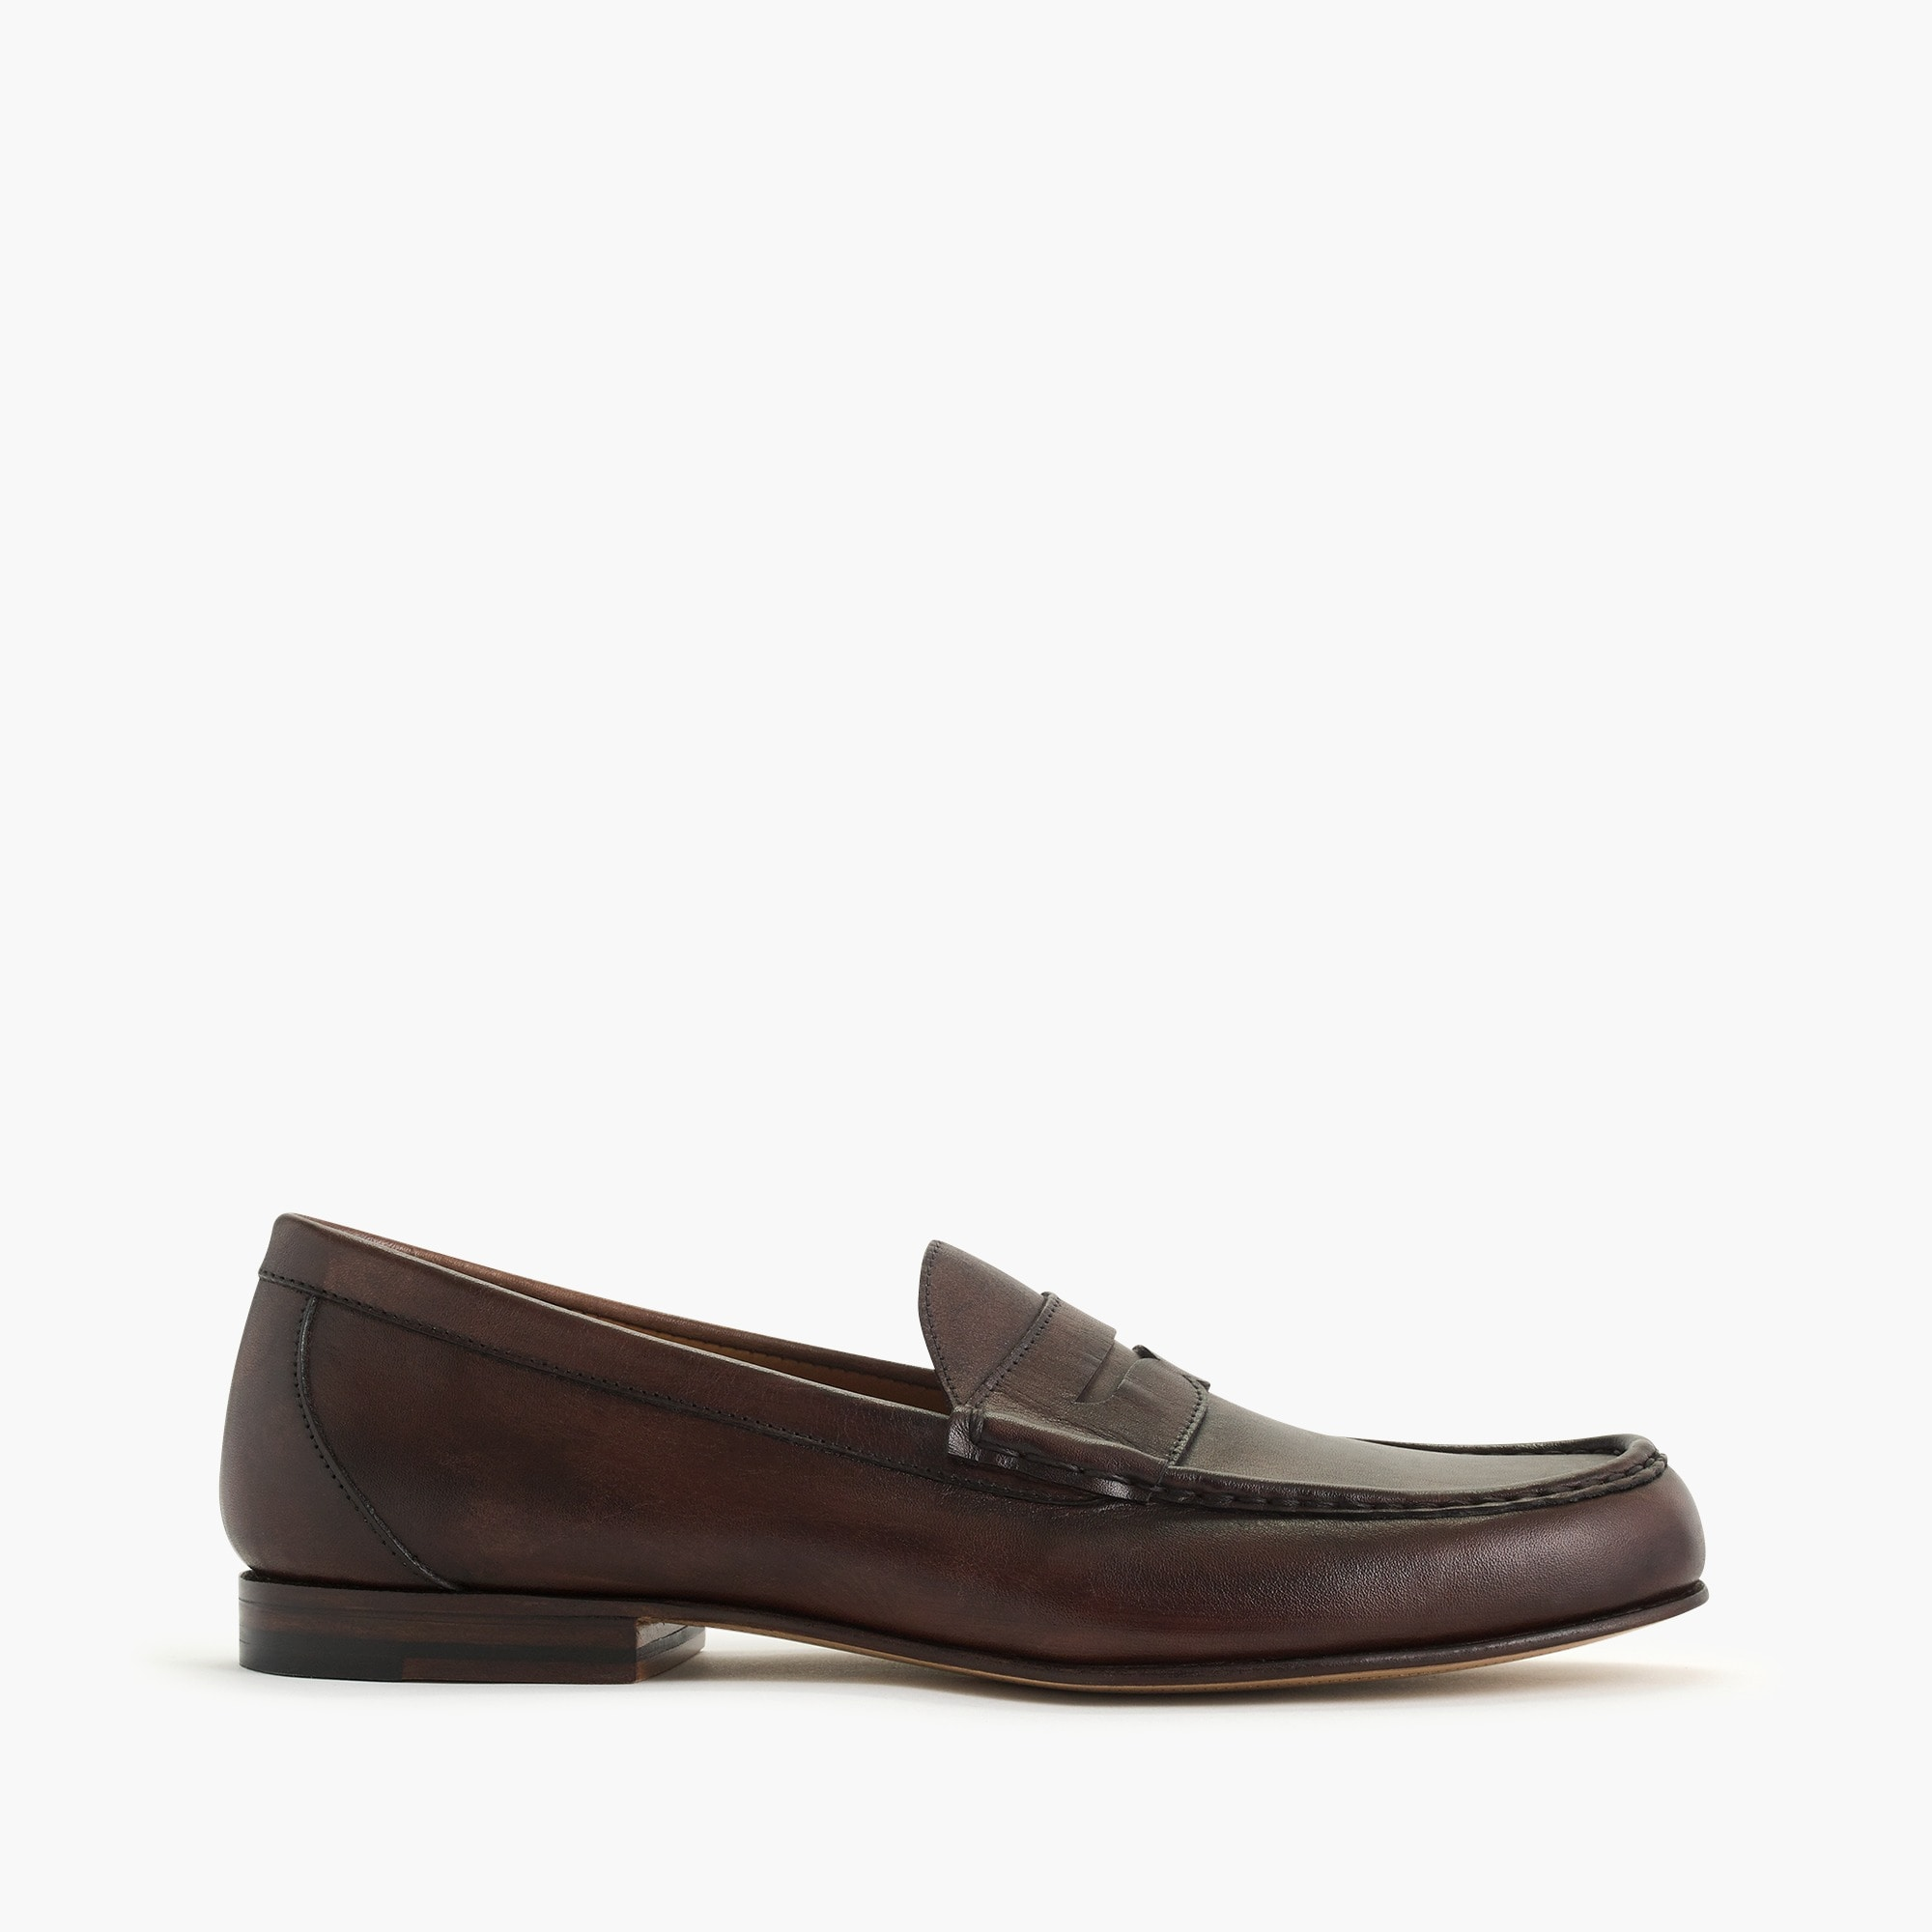 Image 1 for Ludlow Italian leather penny loafers